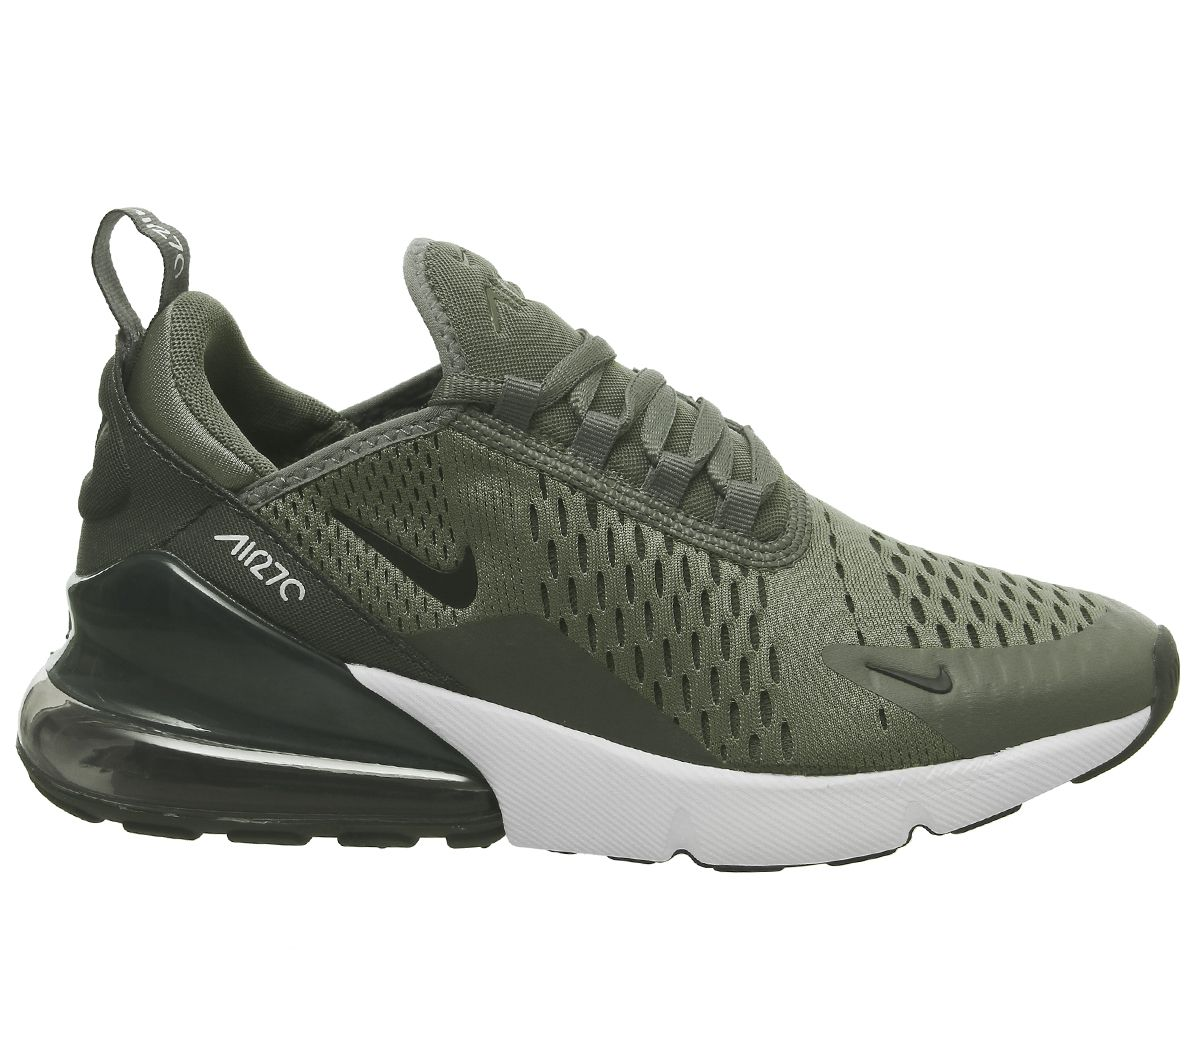 d030b5ad8ae3 Nike Air Max 270 Gs Trainers Vintage Lichen Mineral Spurce - Hers ...